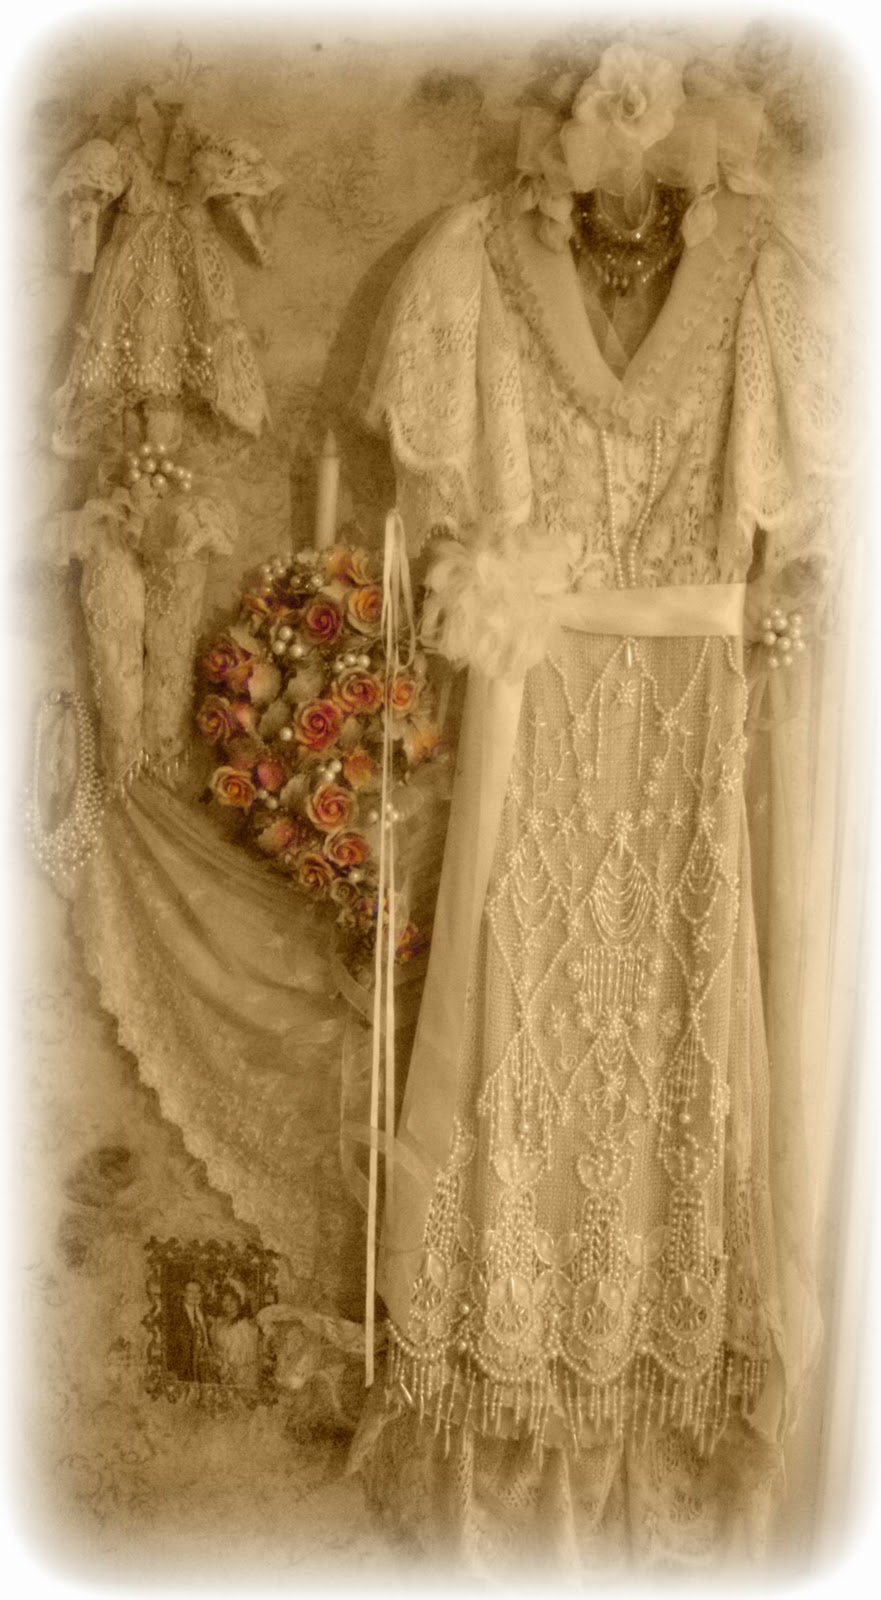 Suzy Homefaker: VINTAGE WEDDING DRESS SHADOW BOX